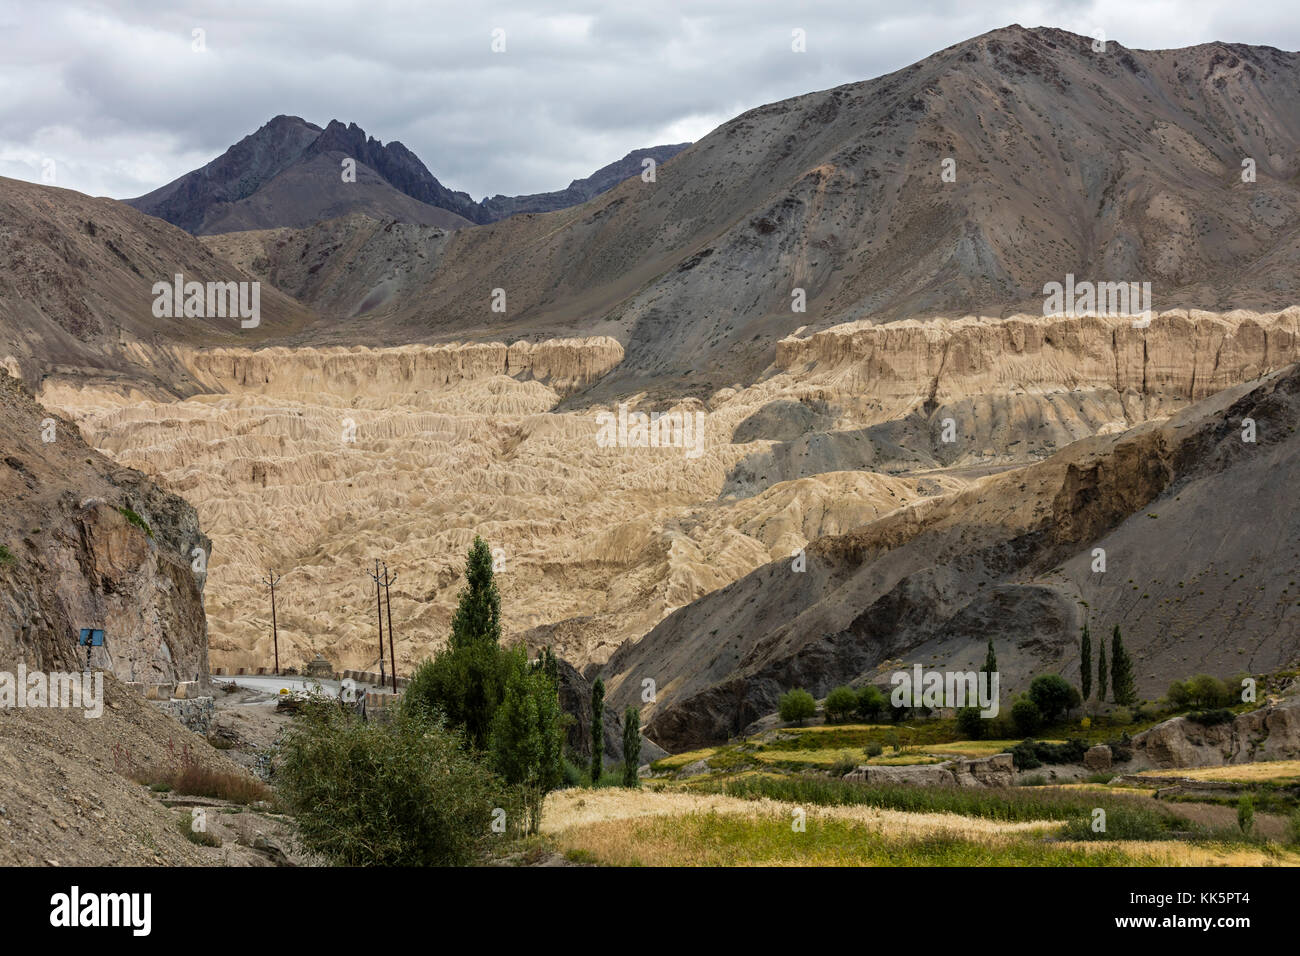 Geological features as seen from LAMAYURU MONASTERY founded by NAROPA - LADAKH, INDIA - Stock Image